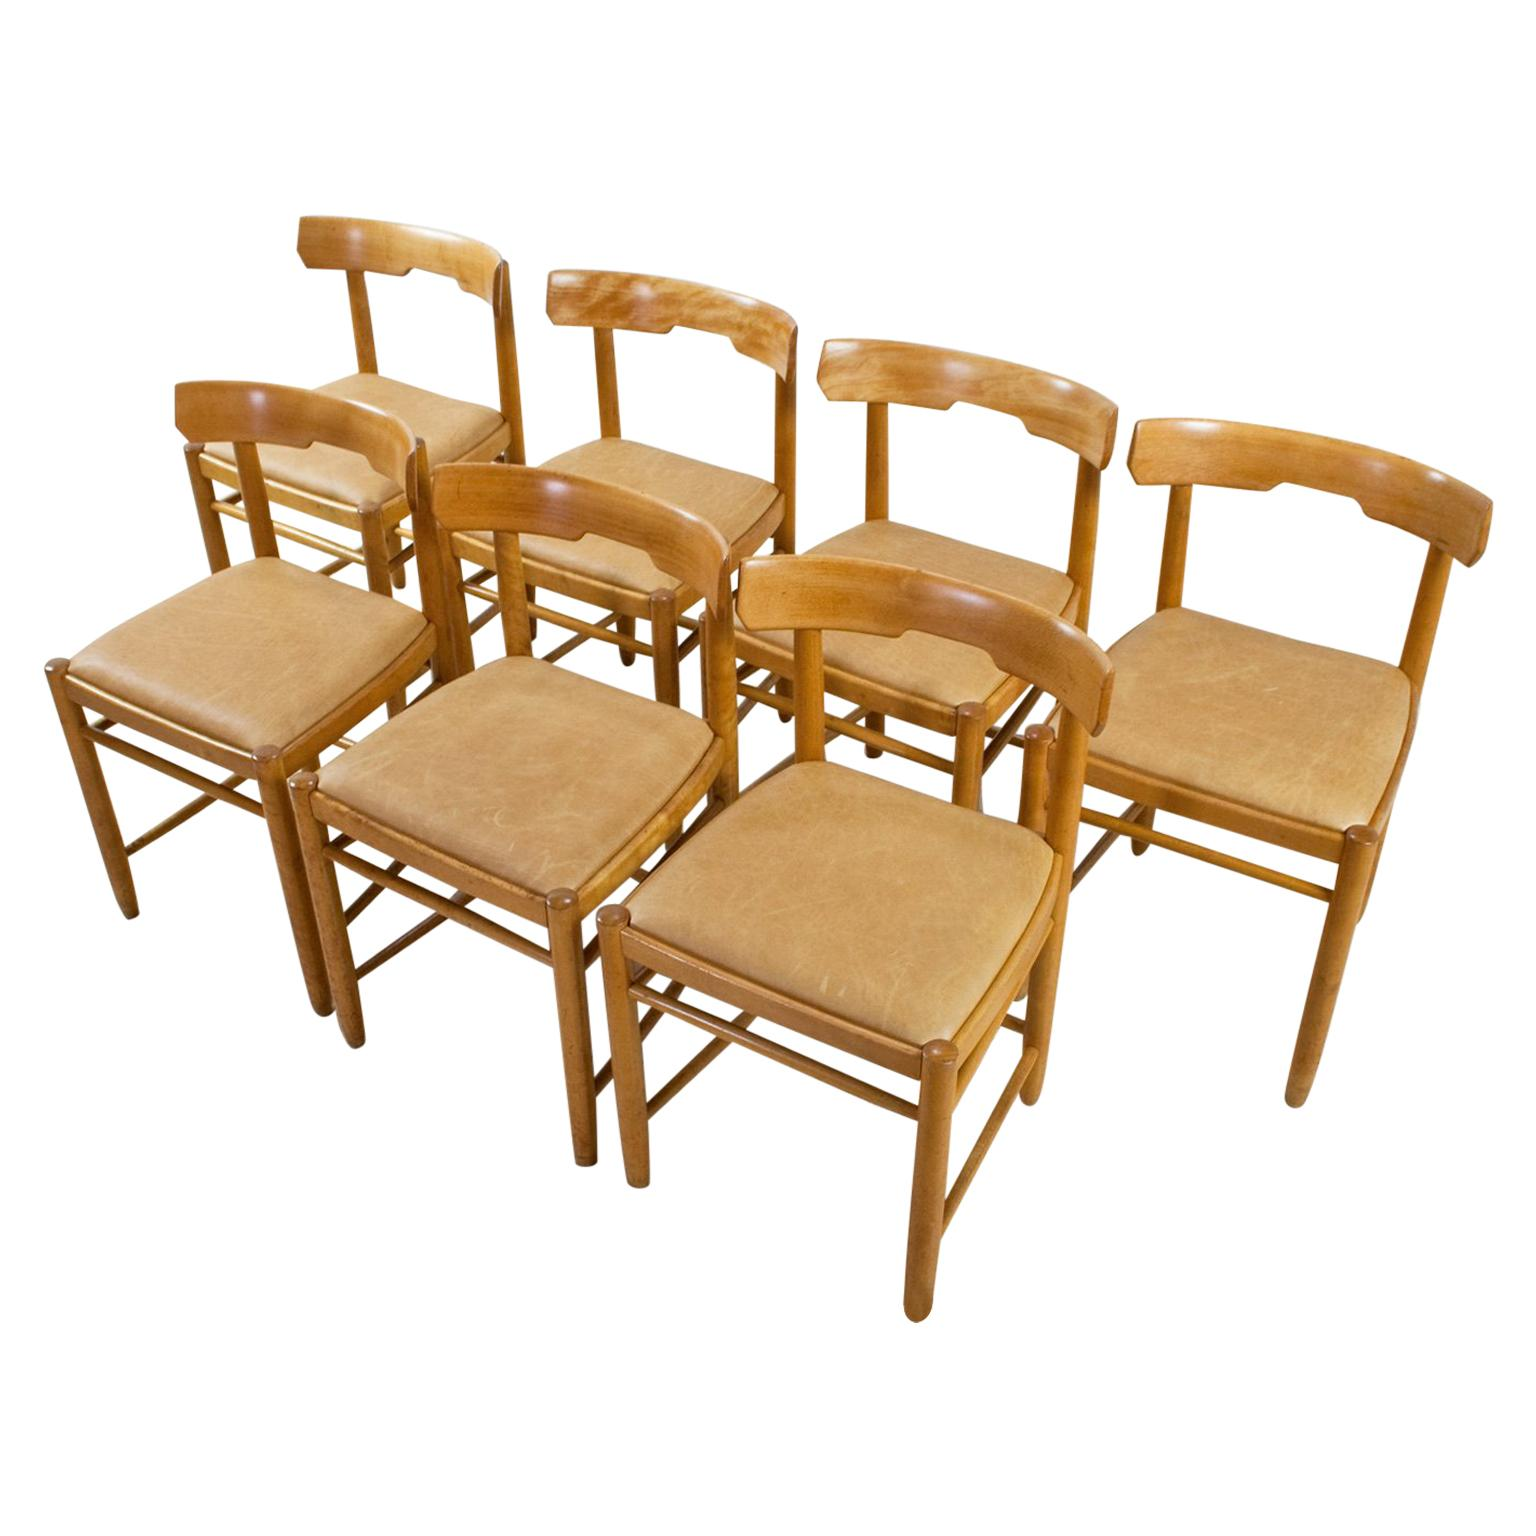 Sedia 1 Mari Handcrafted Set Of Four Pinewood Chairs In Enzo Mari Manner Sedia 1 1974 Project